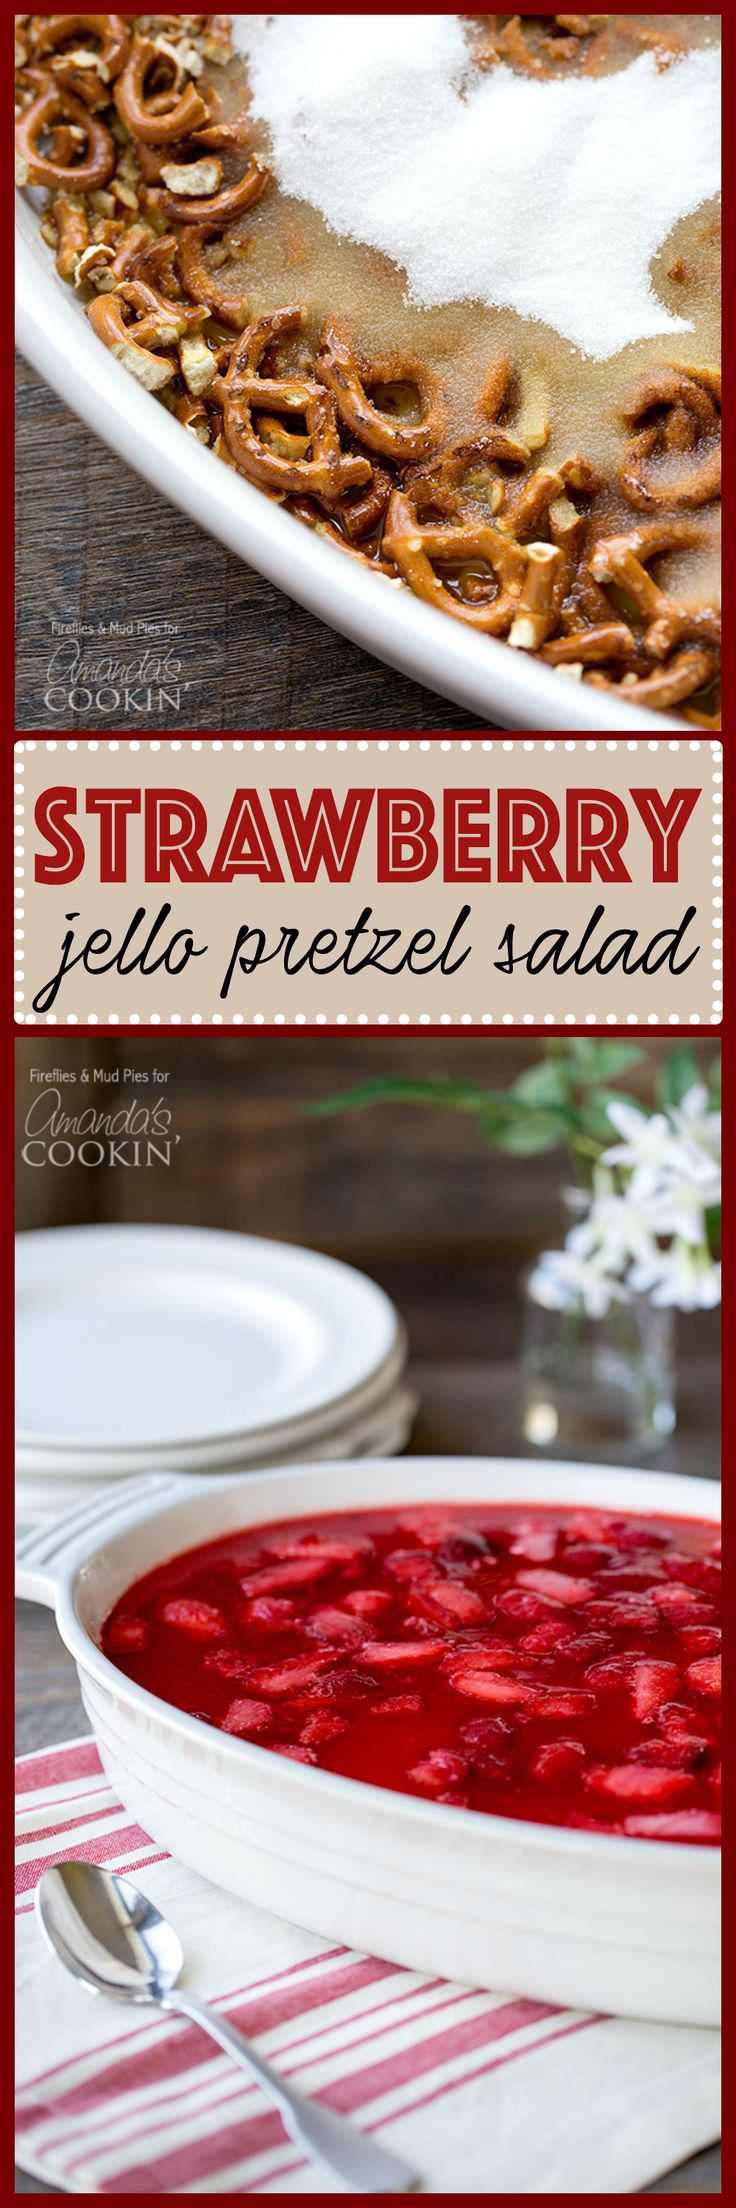 Strawberry Jello Pretzel Salad is perfect for potlucks, holidays and parties! You'll need cream cheese, pretzels, gelatin, butter, sugar and whipped topping